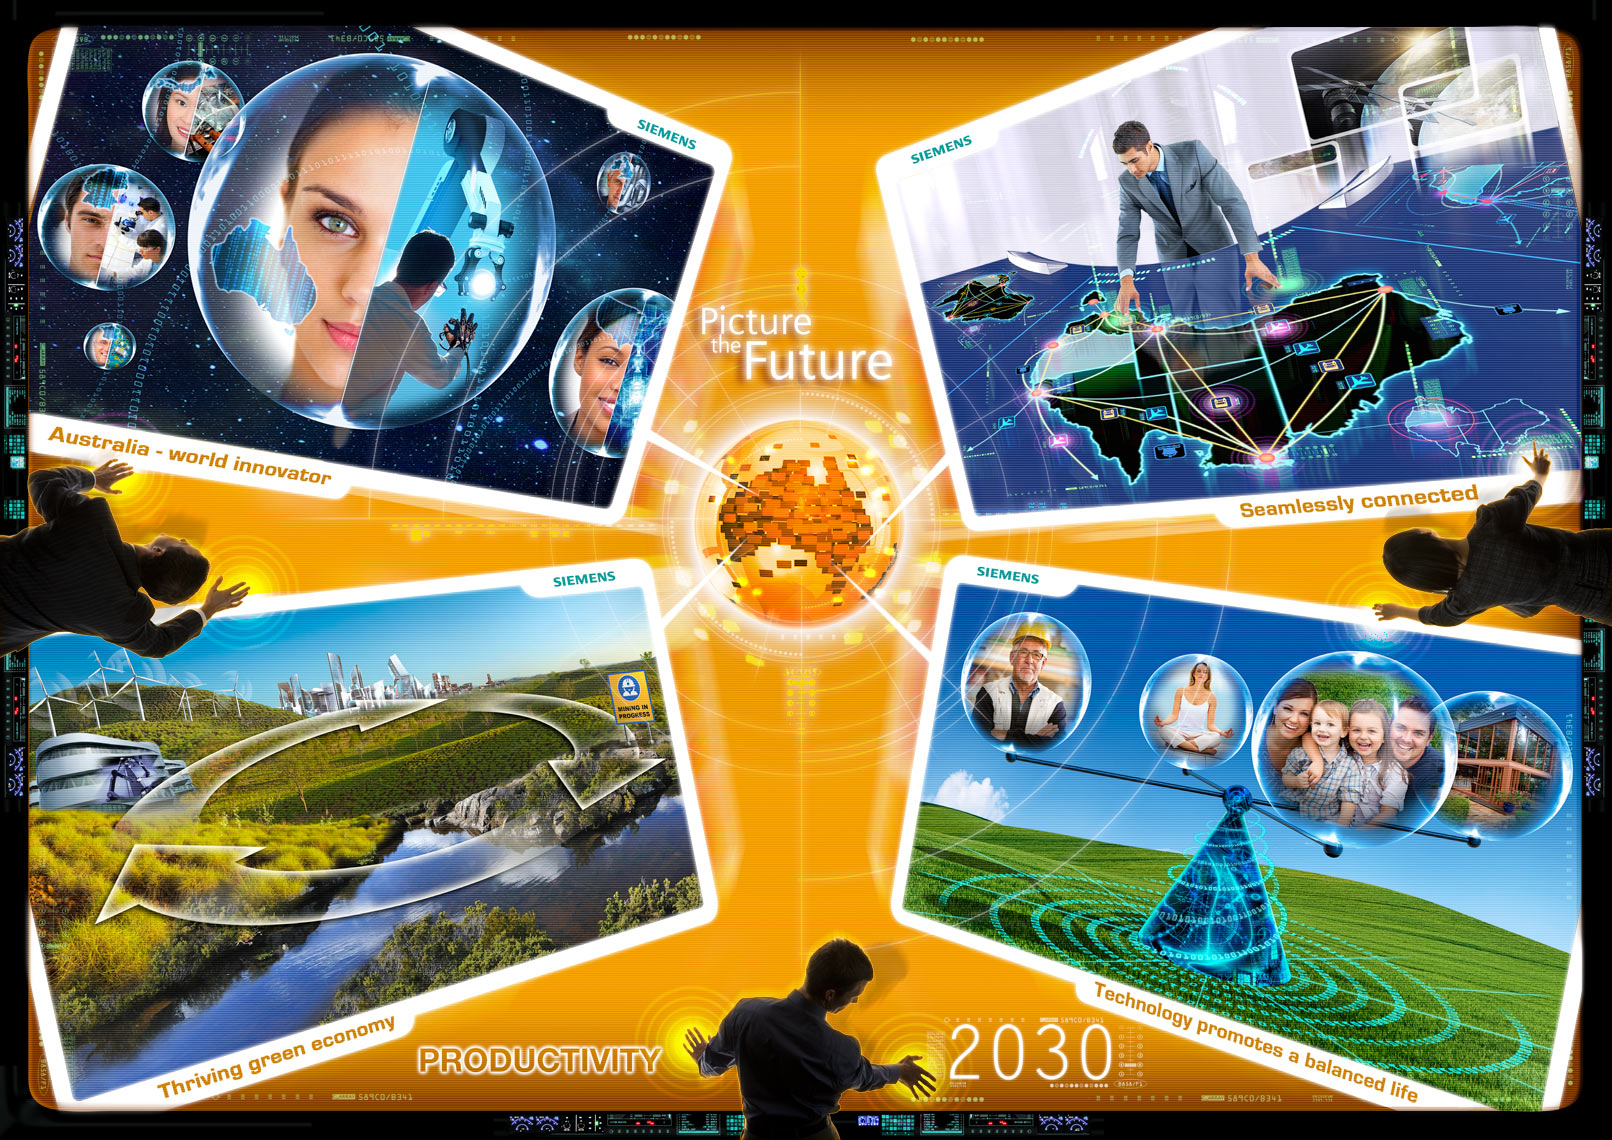 Productivity - Siemens Picture the Future communication design photoshop expert